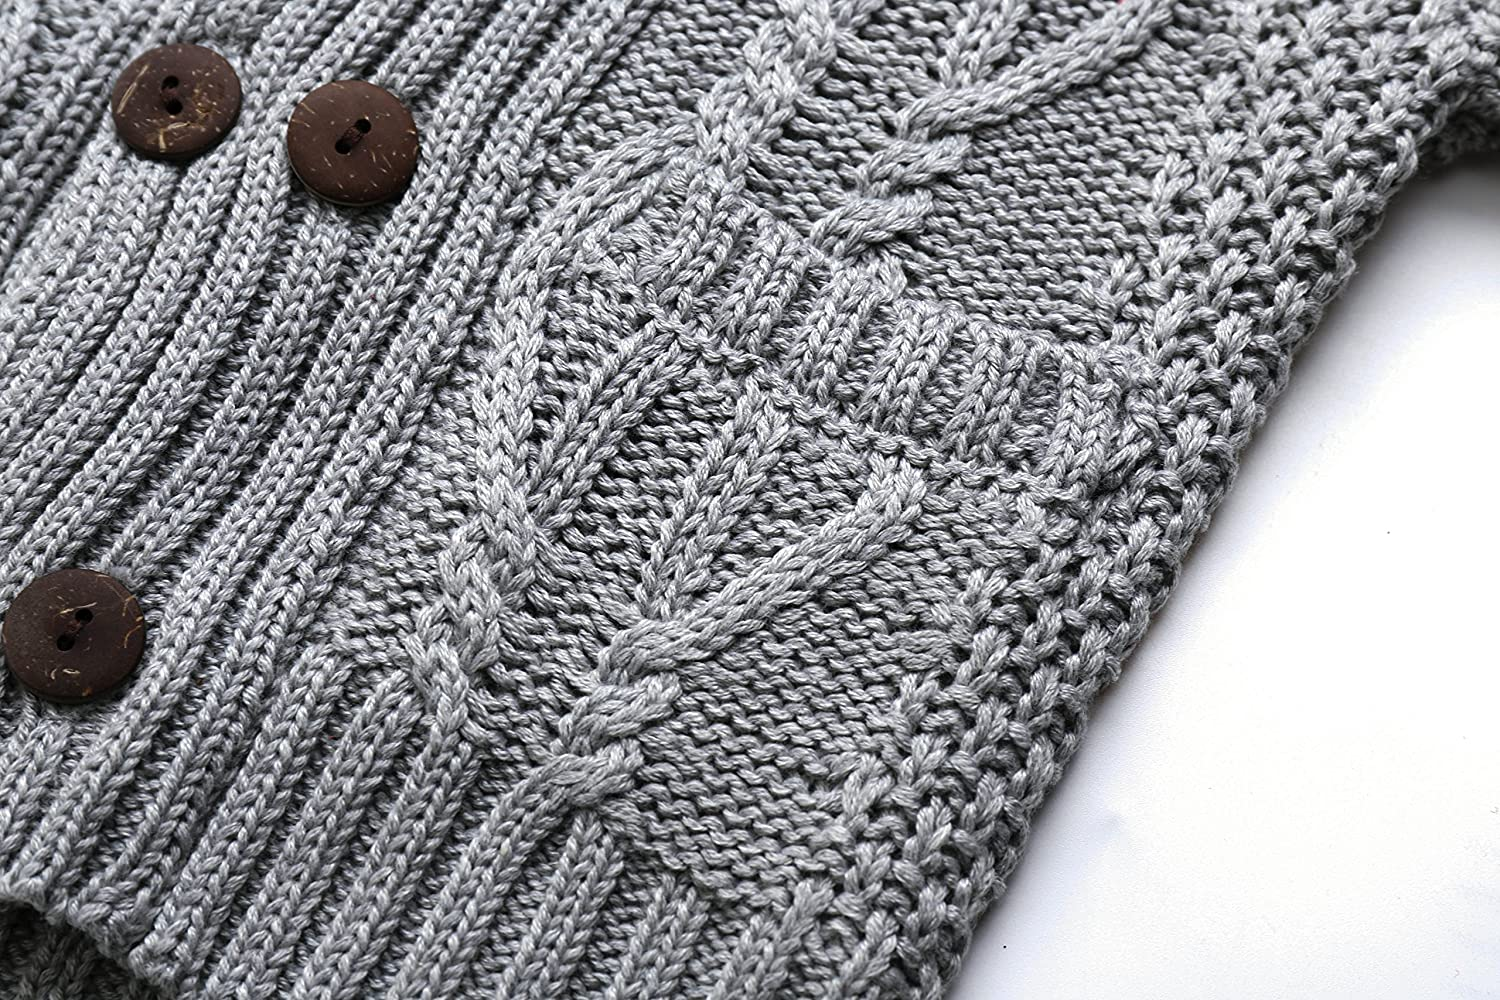 d010f7df003e Amazon.com  DOYOMODA Baby Boys 100% Cotton Cable Knit Cardigan Toddler  Shawl Collar Sweater  Home   Kitchen